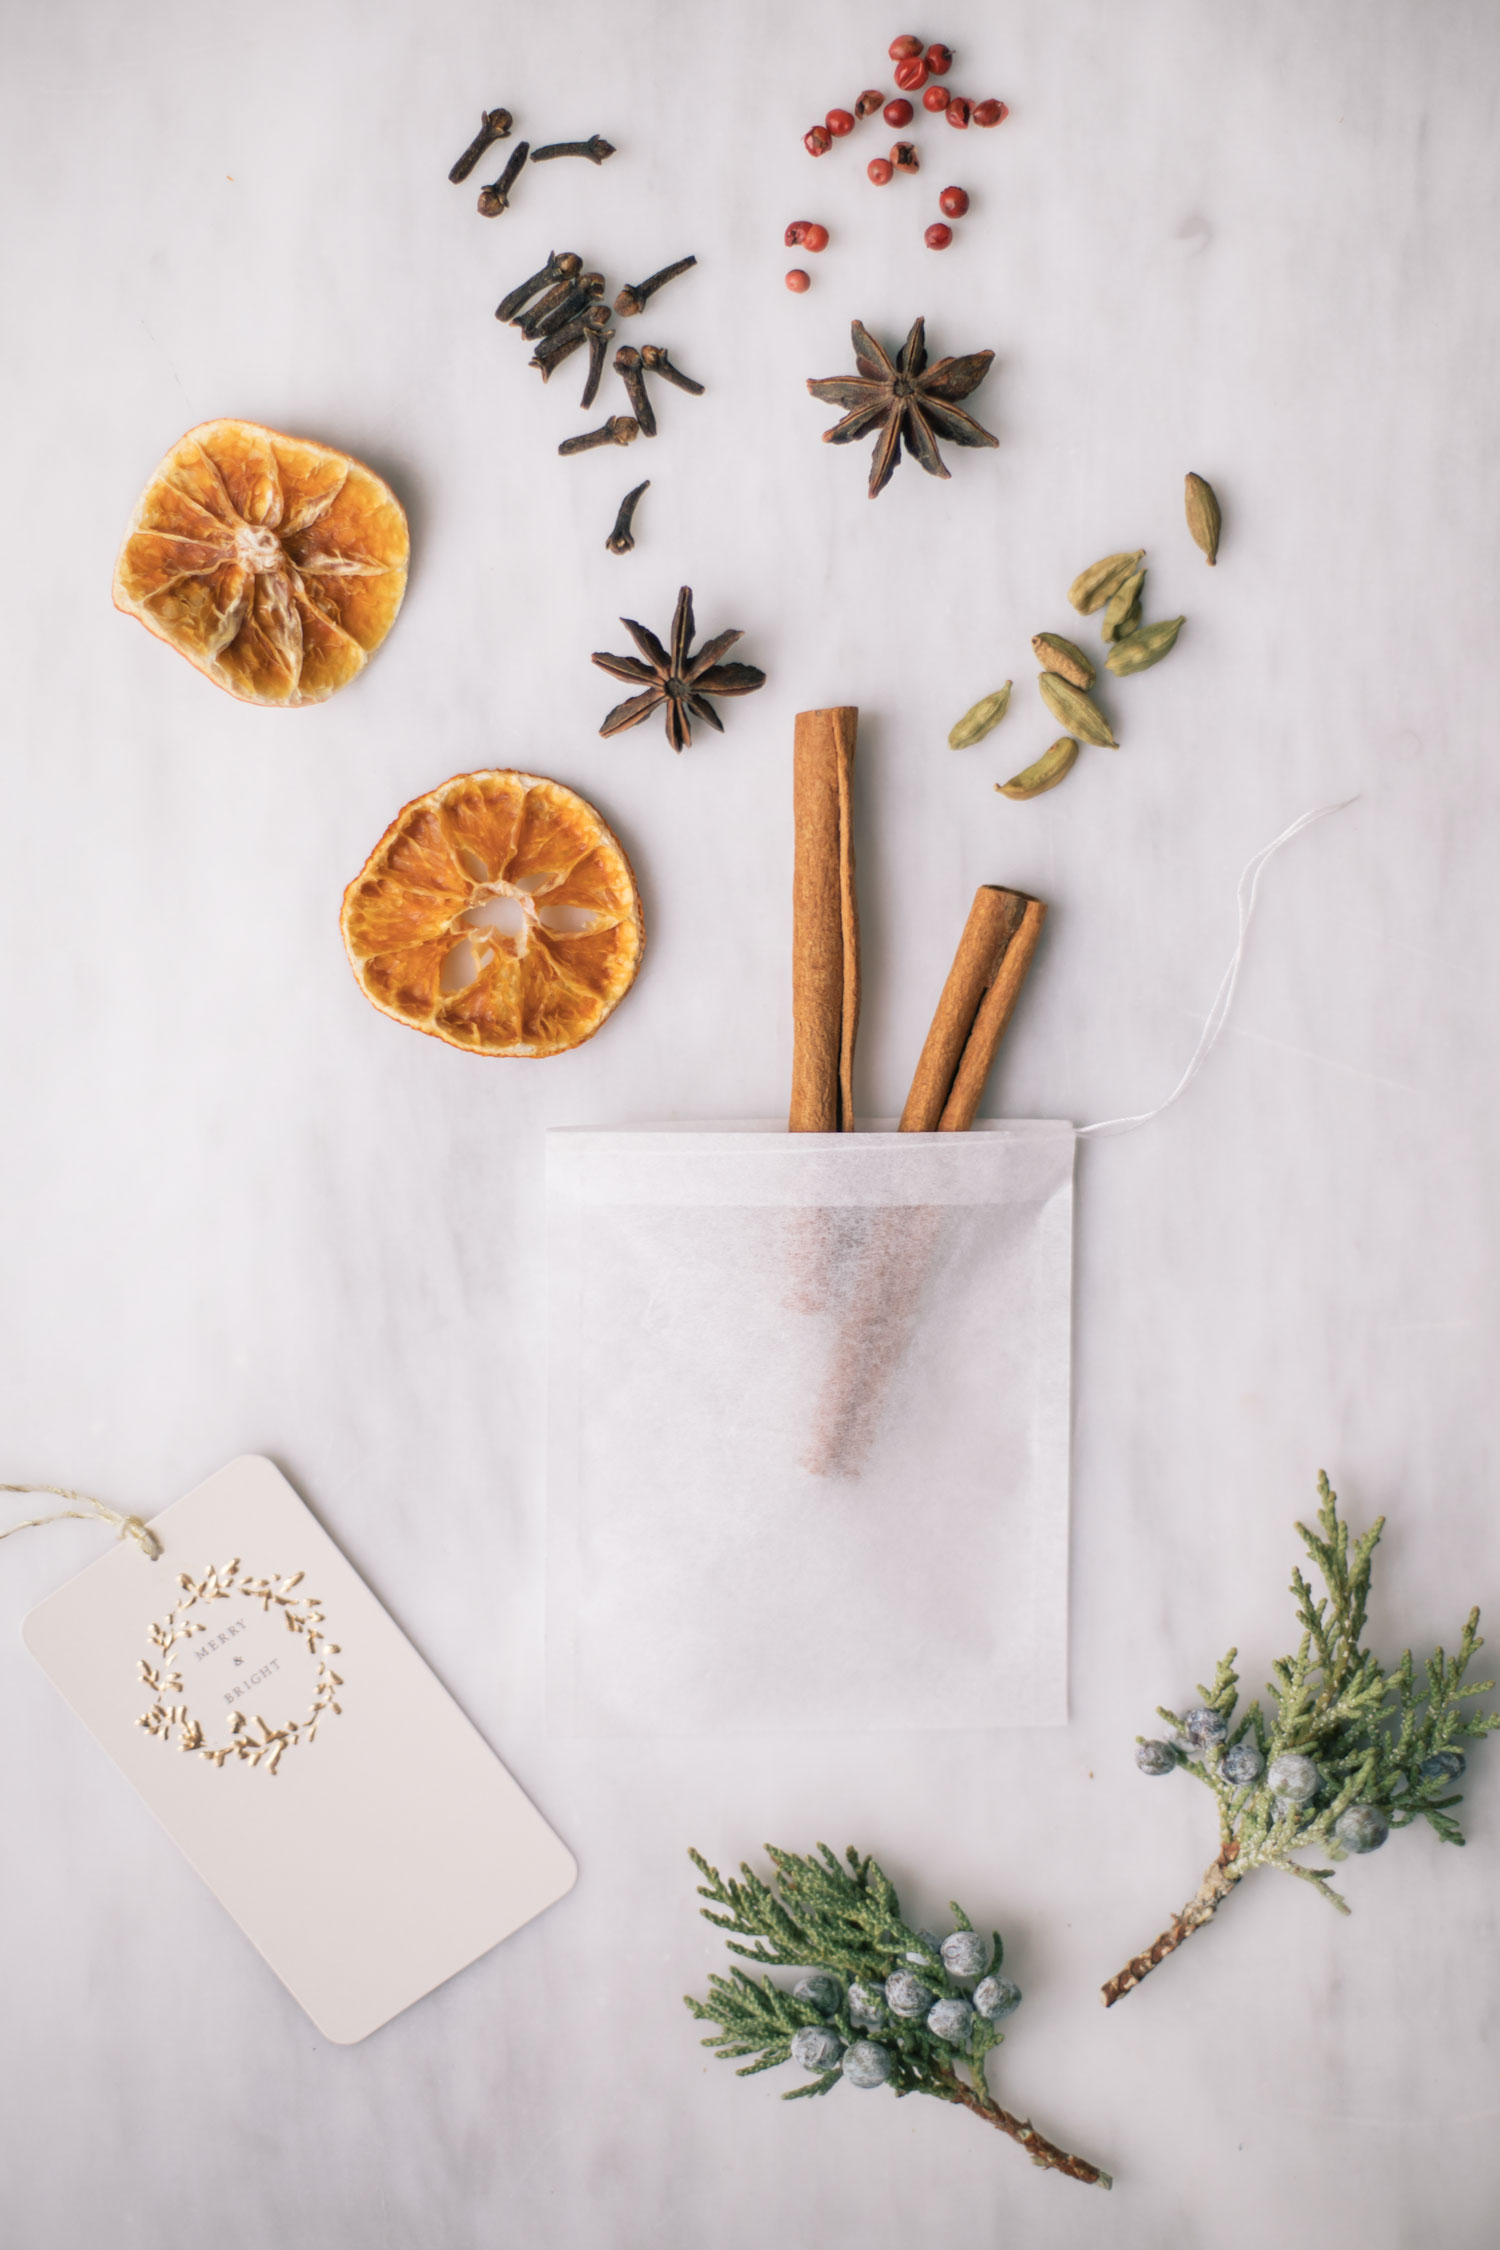 diy mulled wine kit. diy mulled wine kit. diy mulled wine sachets. diy mulled wine sachets. diy mulled wine spices. diy mulled wine spices. mulled wine mulled wine. mulled wine recipe mulled wine recipe. mulled wine kit mulled wine kit. how to make a mulled wine kit. how to make a mulled wine kit. how to make mulled wine spice. how to make mulled wine spice. mulled wine sachets. mulled wine sachets. jackson triggs winery. jackson triggs